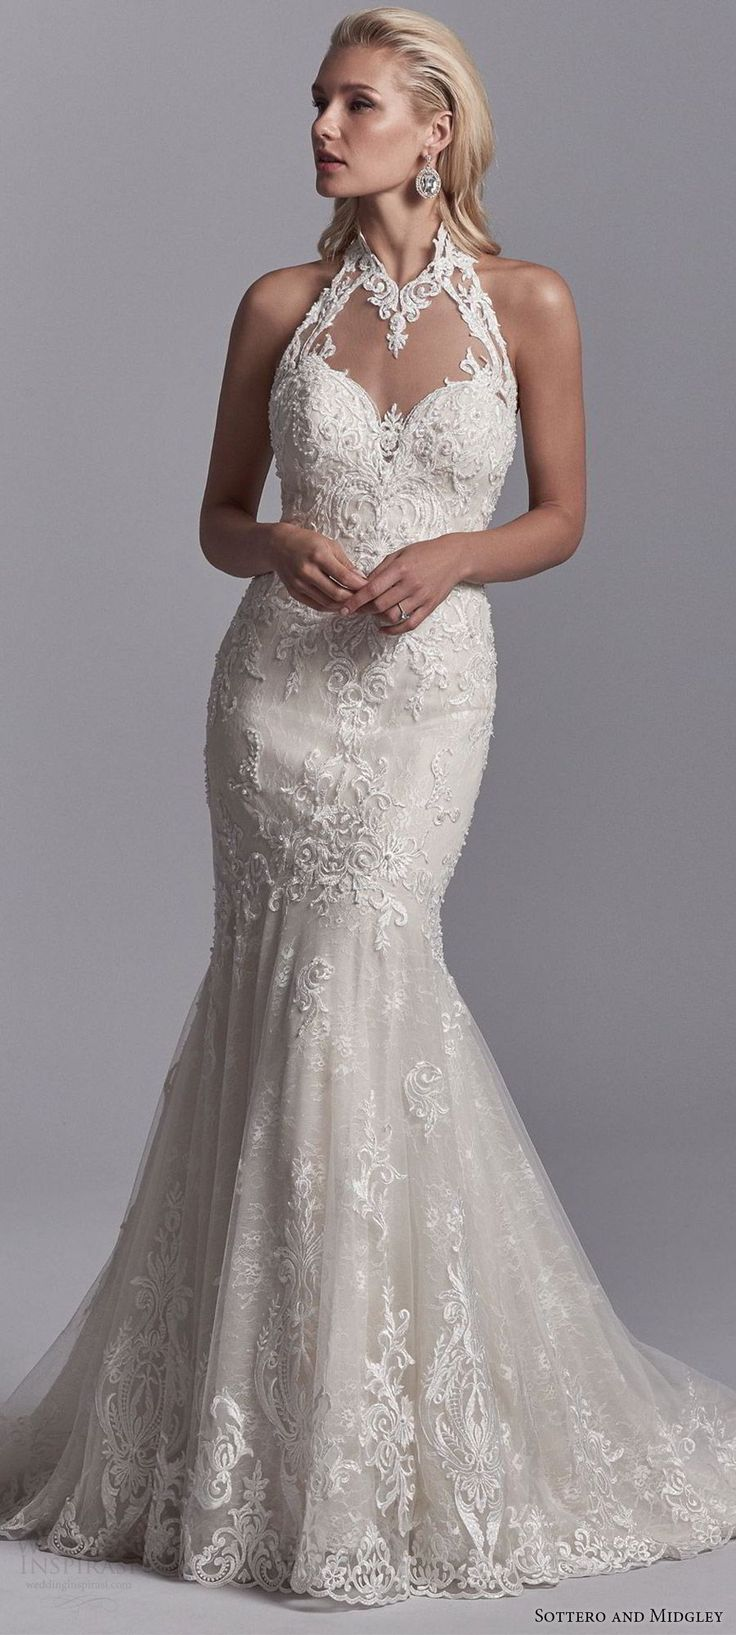 2018 Wedding Dress Trends of Love Part 1 - Silhouettes and Sleeves